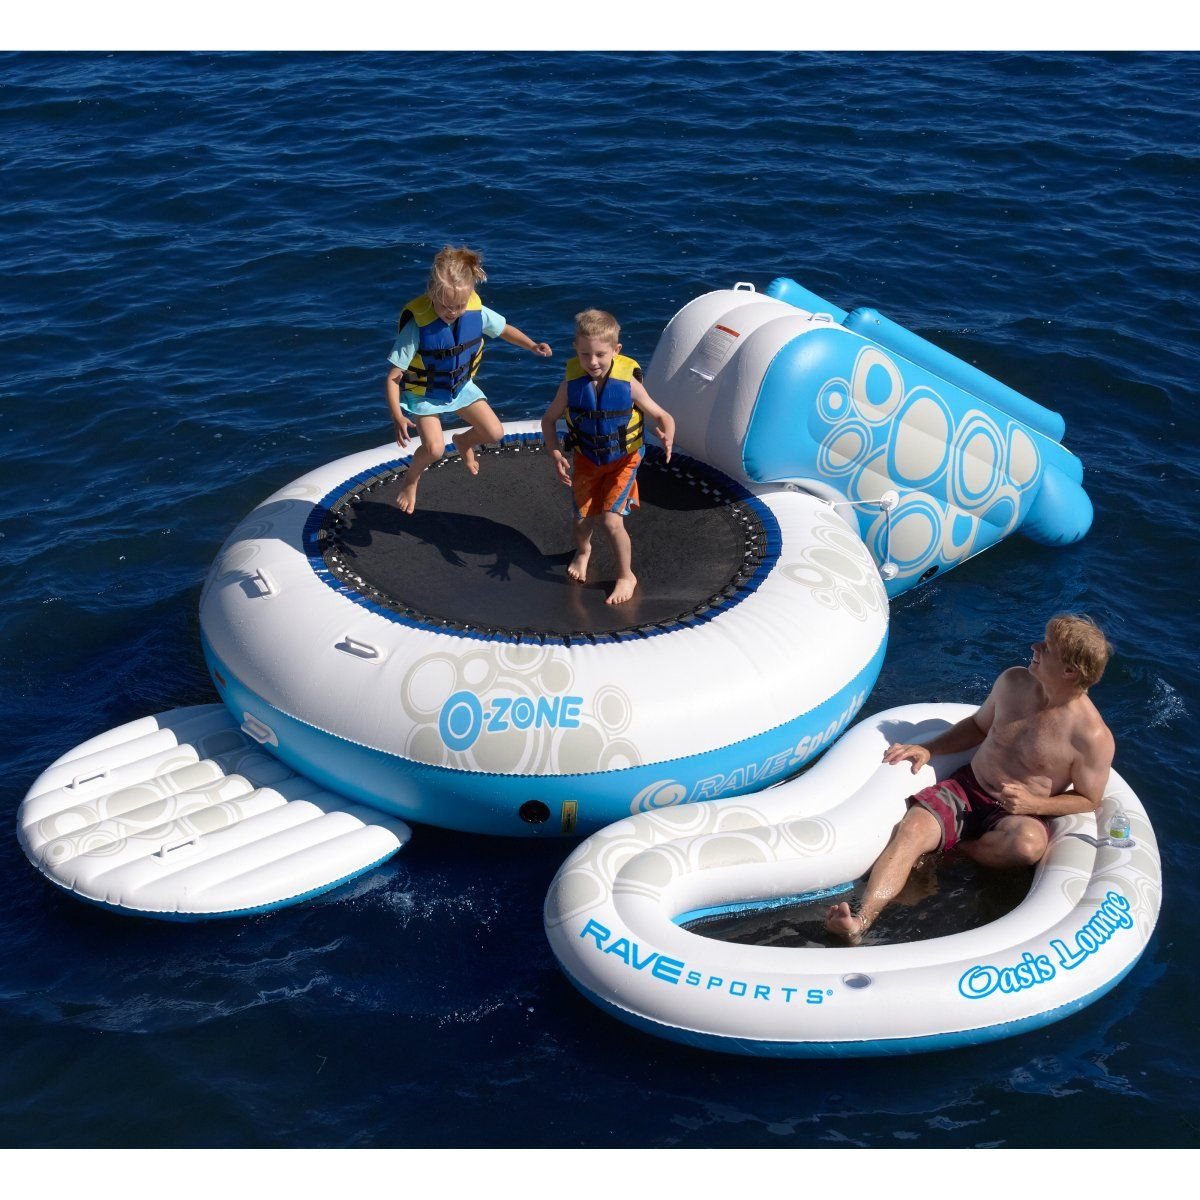 RAVE Sports OZone Bounce Platform Water Trampolines at